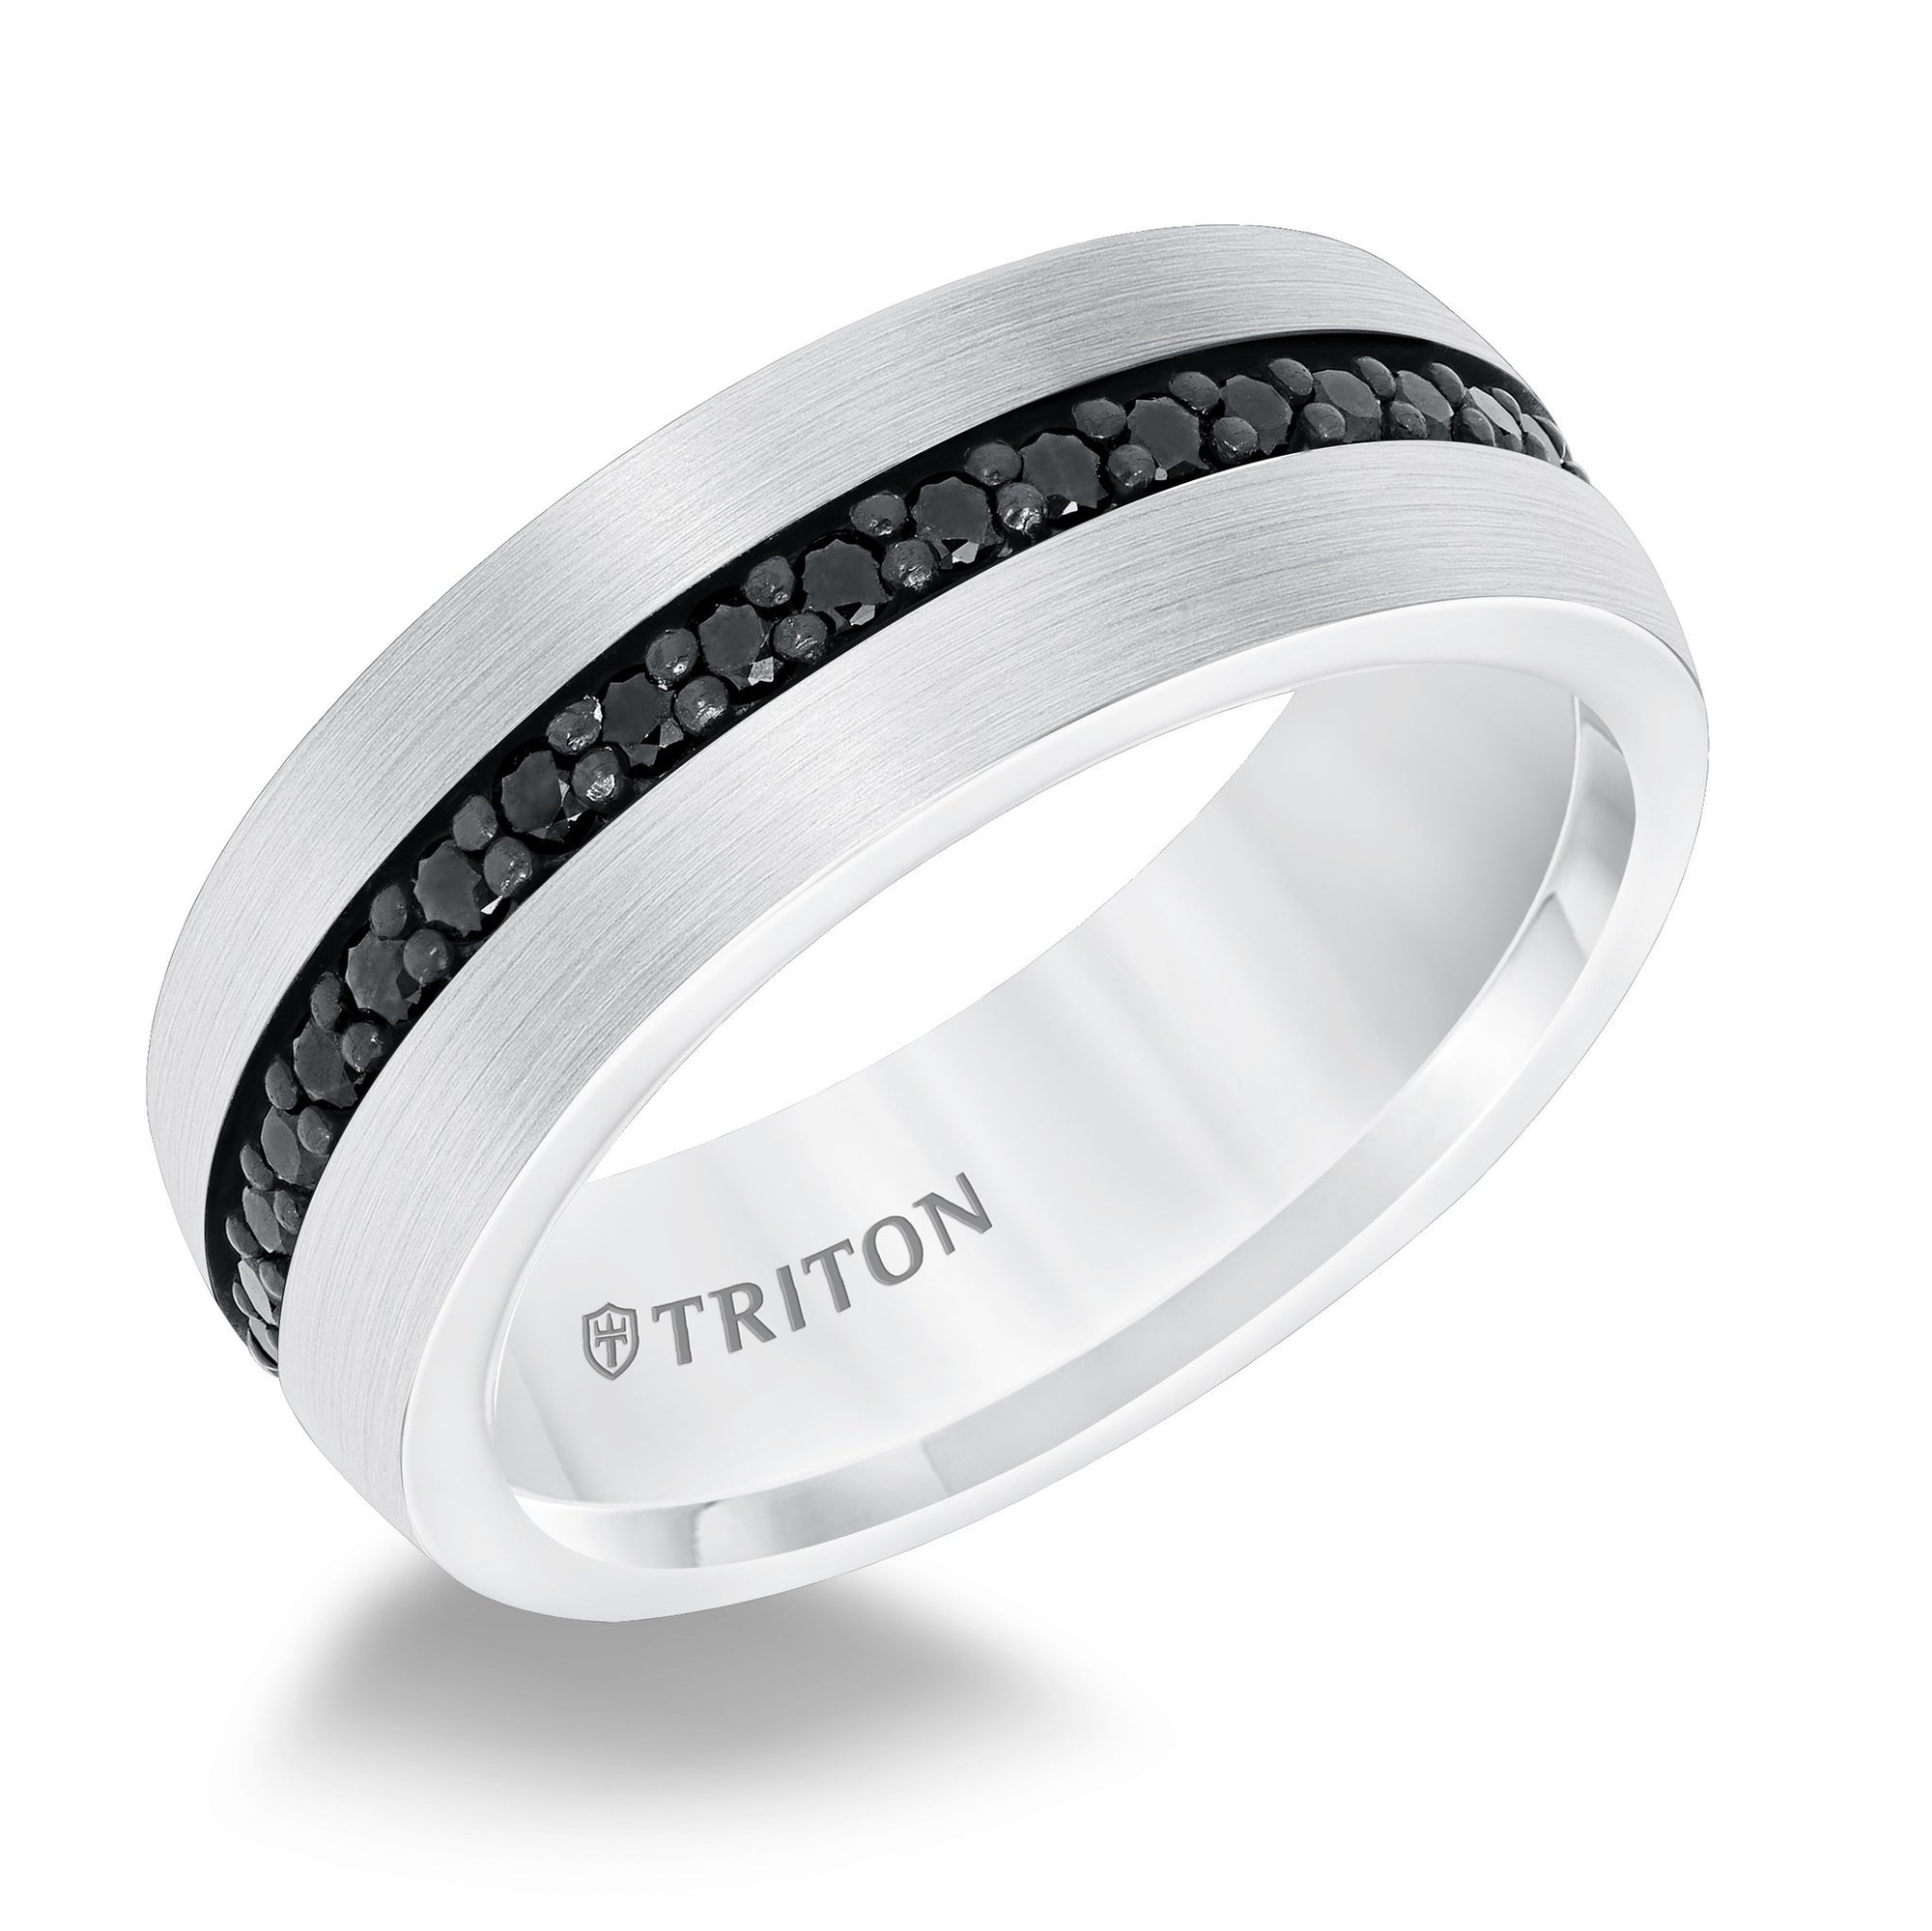 ion wedding plated steel contemporary rings jewelry skull ring stainless metal shop triton black